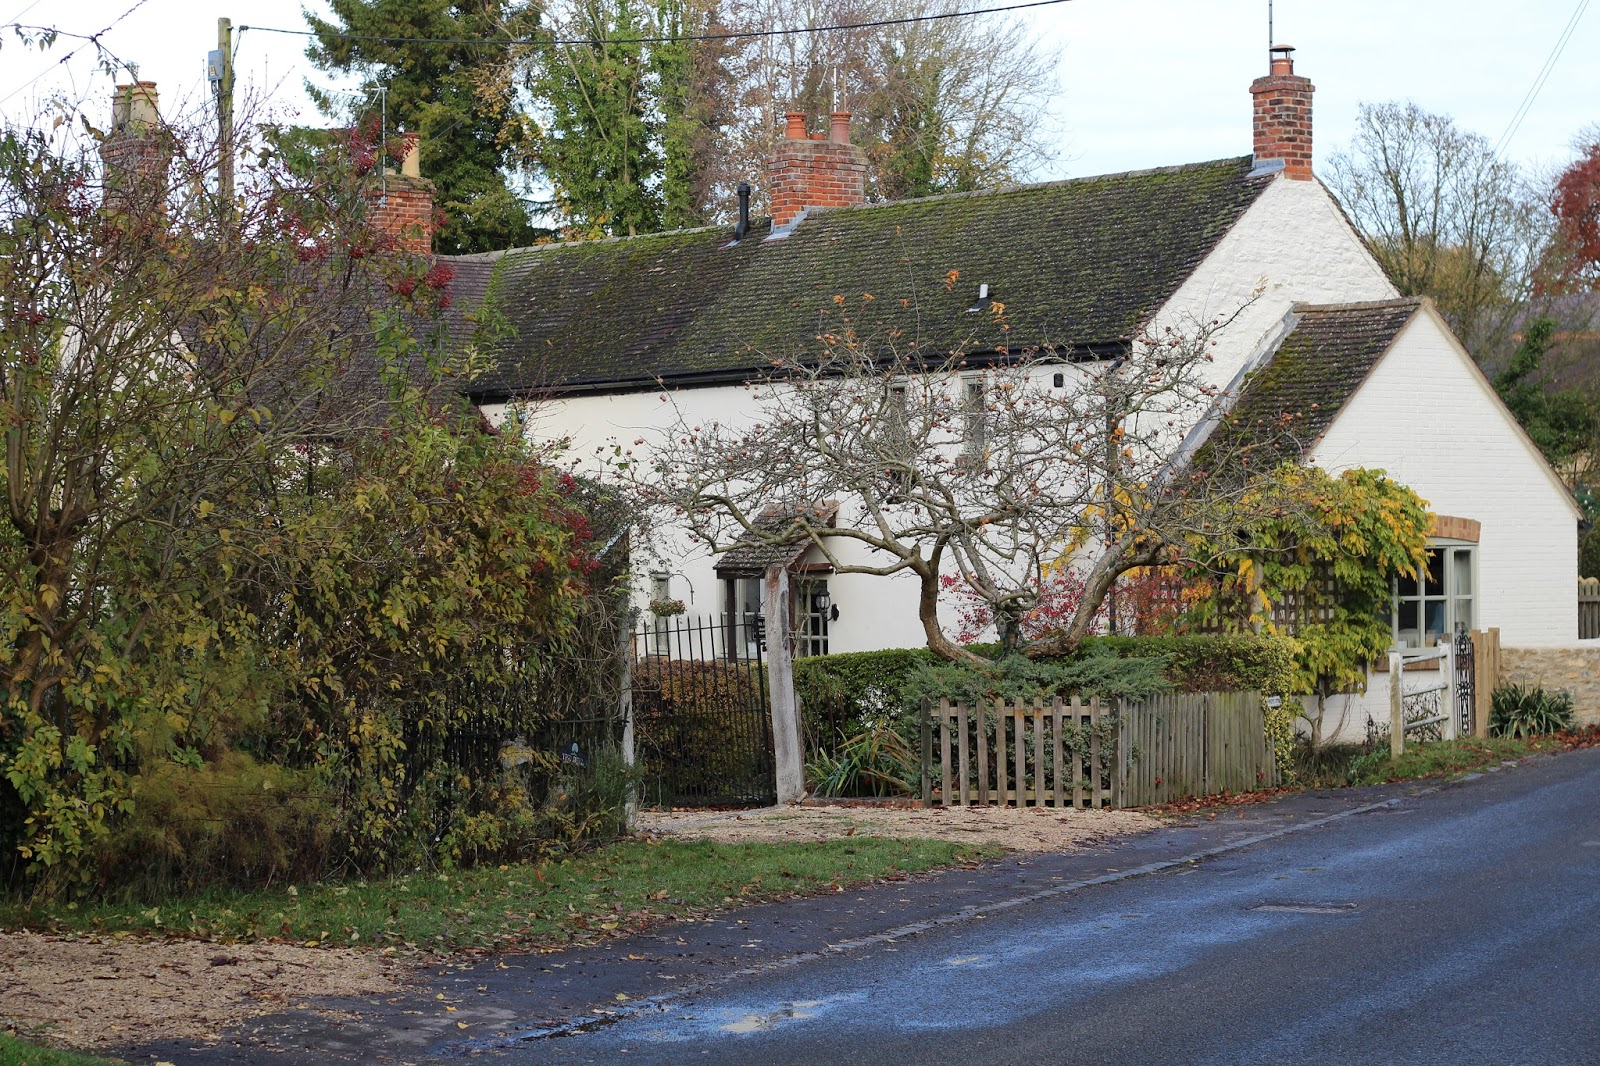 The village is full of beautiful little cottages and dreamy houses. If staying in Oxford long term meant we got to live in one of these beauties I could ... & Right on our Doorstep: Exploring Great Milton | Life With The Roof ... pezcame.com